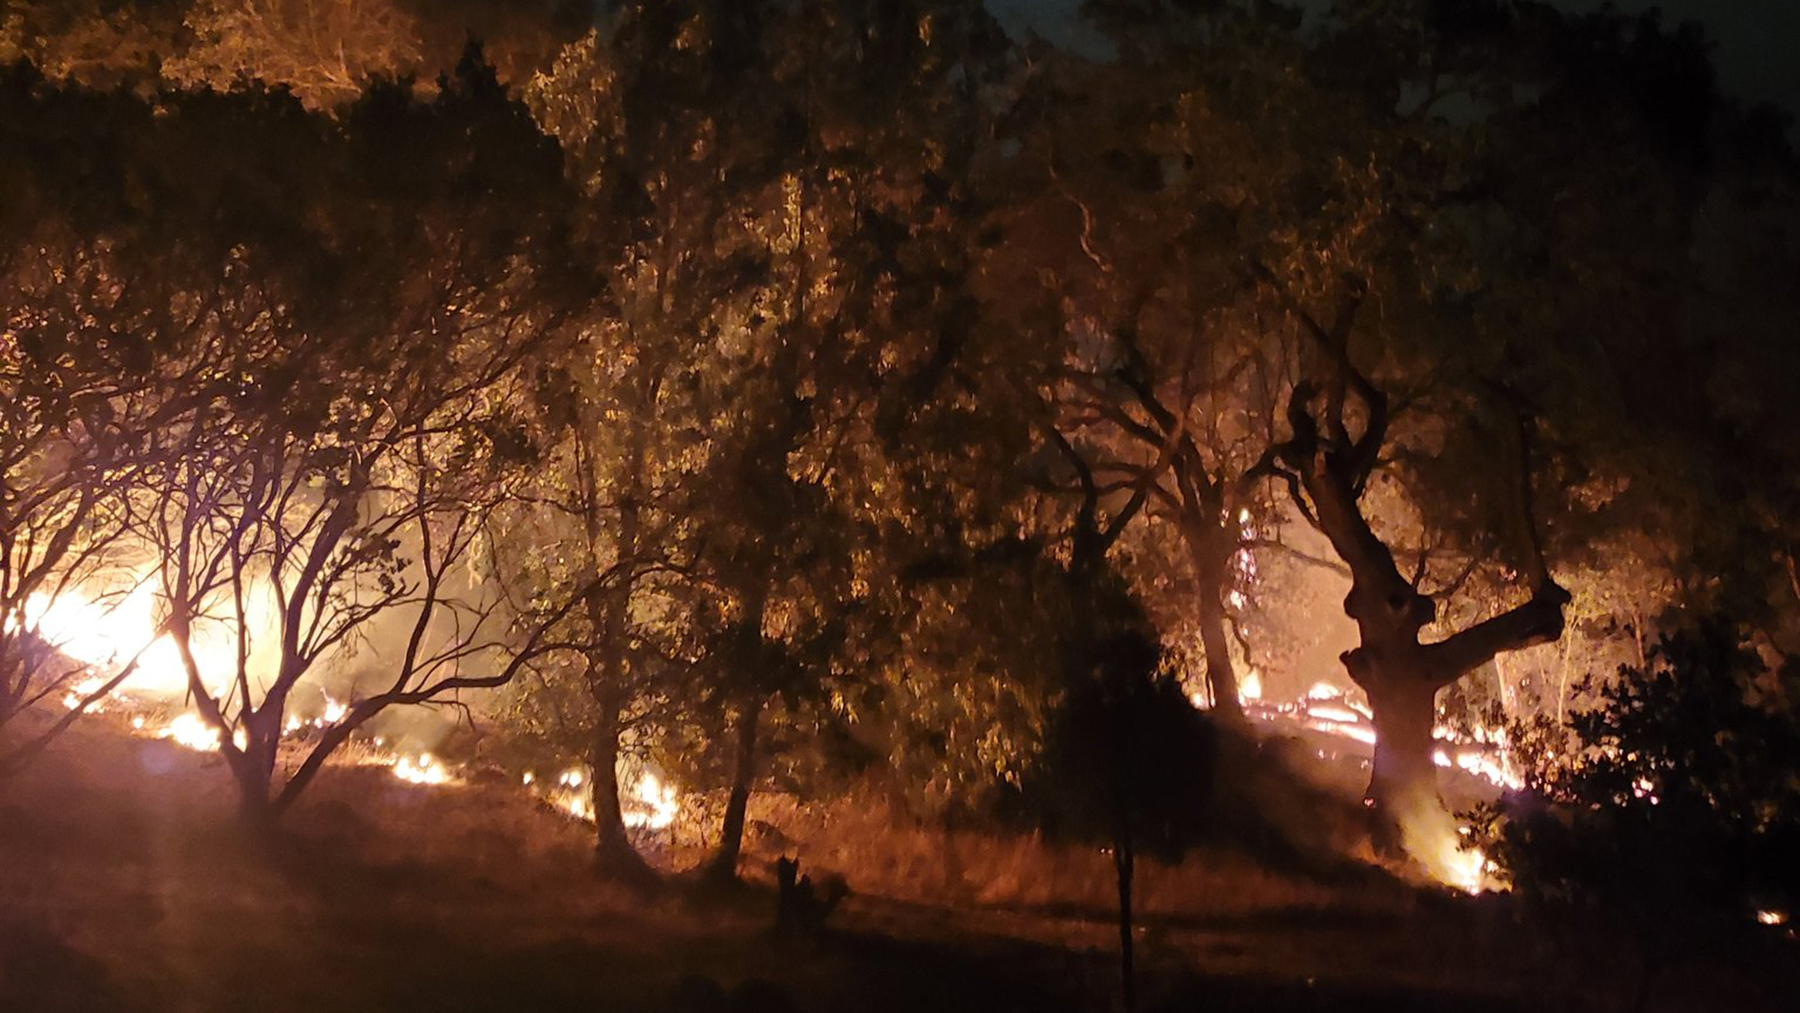 The Glass Fire burns through trees on a Sonoma County hillside. (Photo courtesy of the Sonoma County Sheriff's Office)